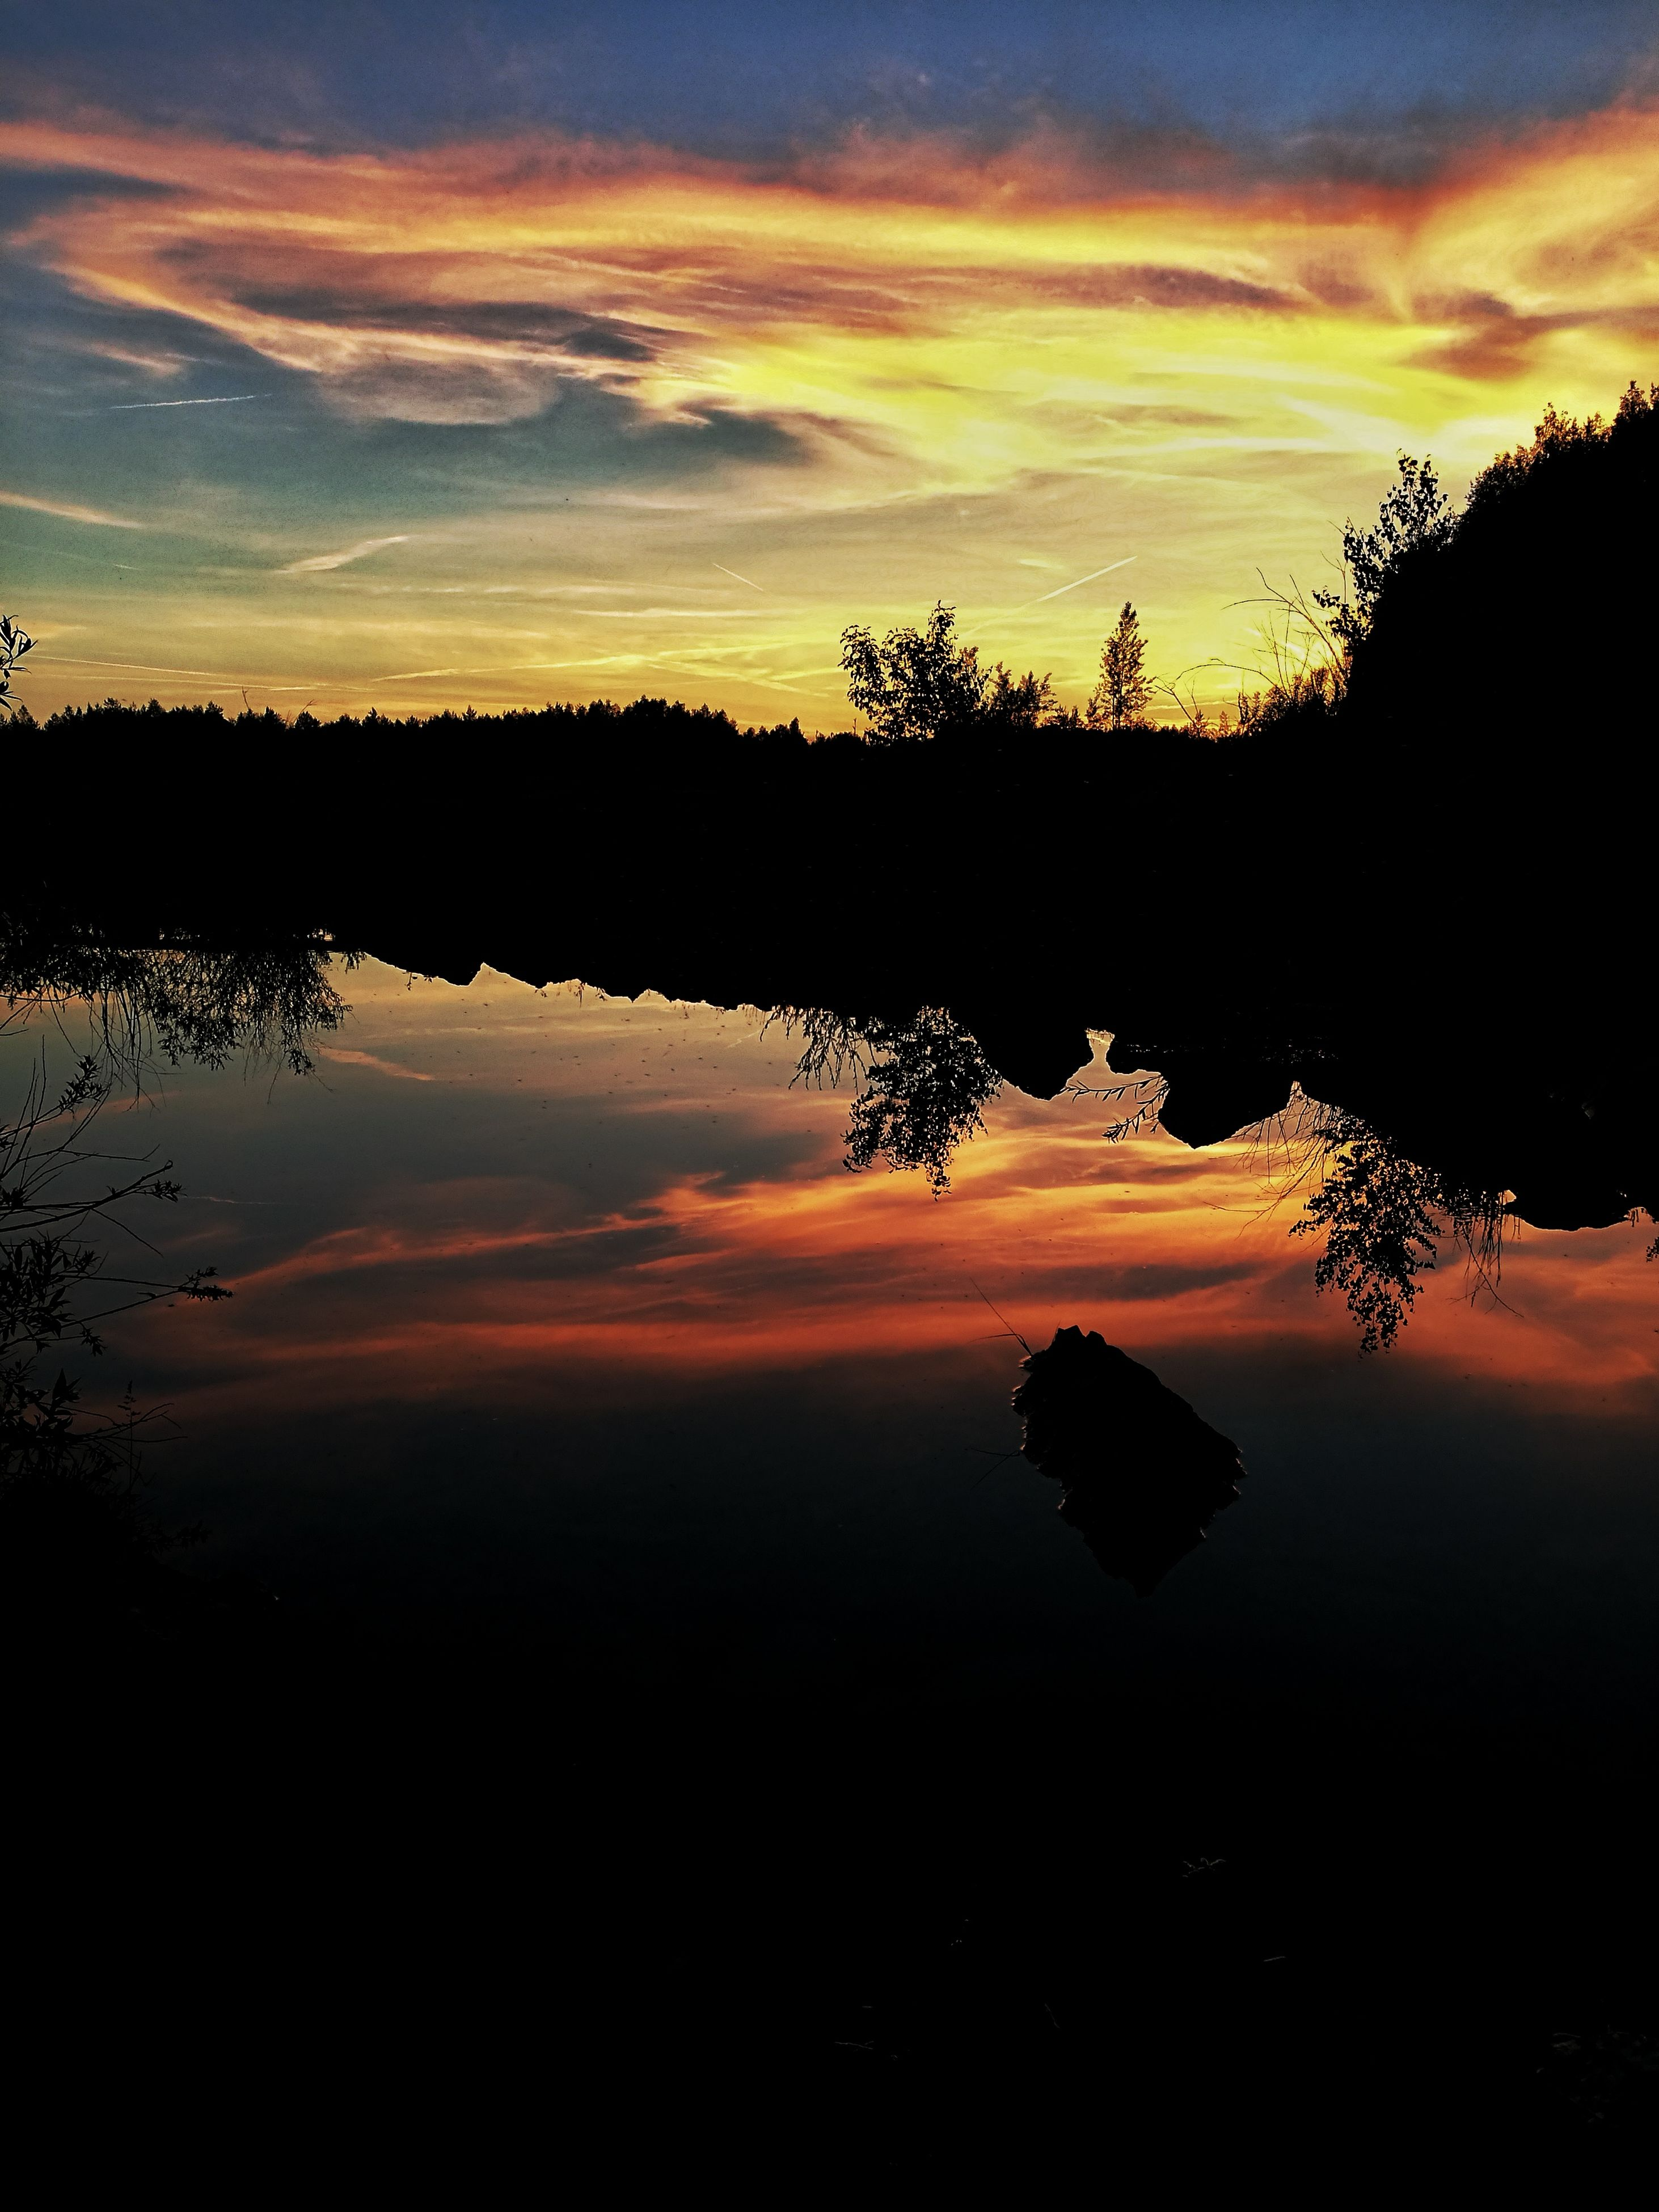 sunset, silhouette, tree, beauty in nature, tranquil scene, nature, tranquility, reflection, scenics, sky, orange color, cloud - sky, idyllic, water, lake, outdoors, no people, landscape, day